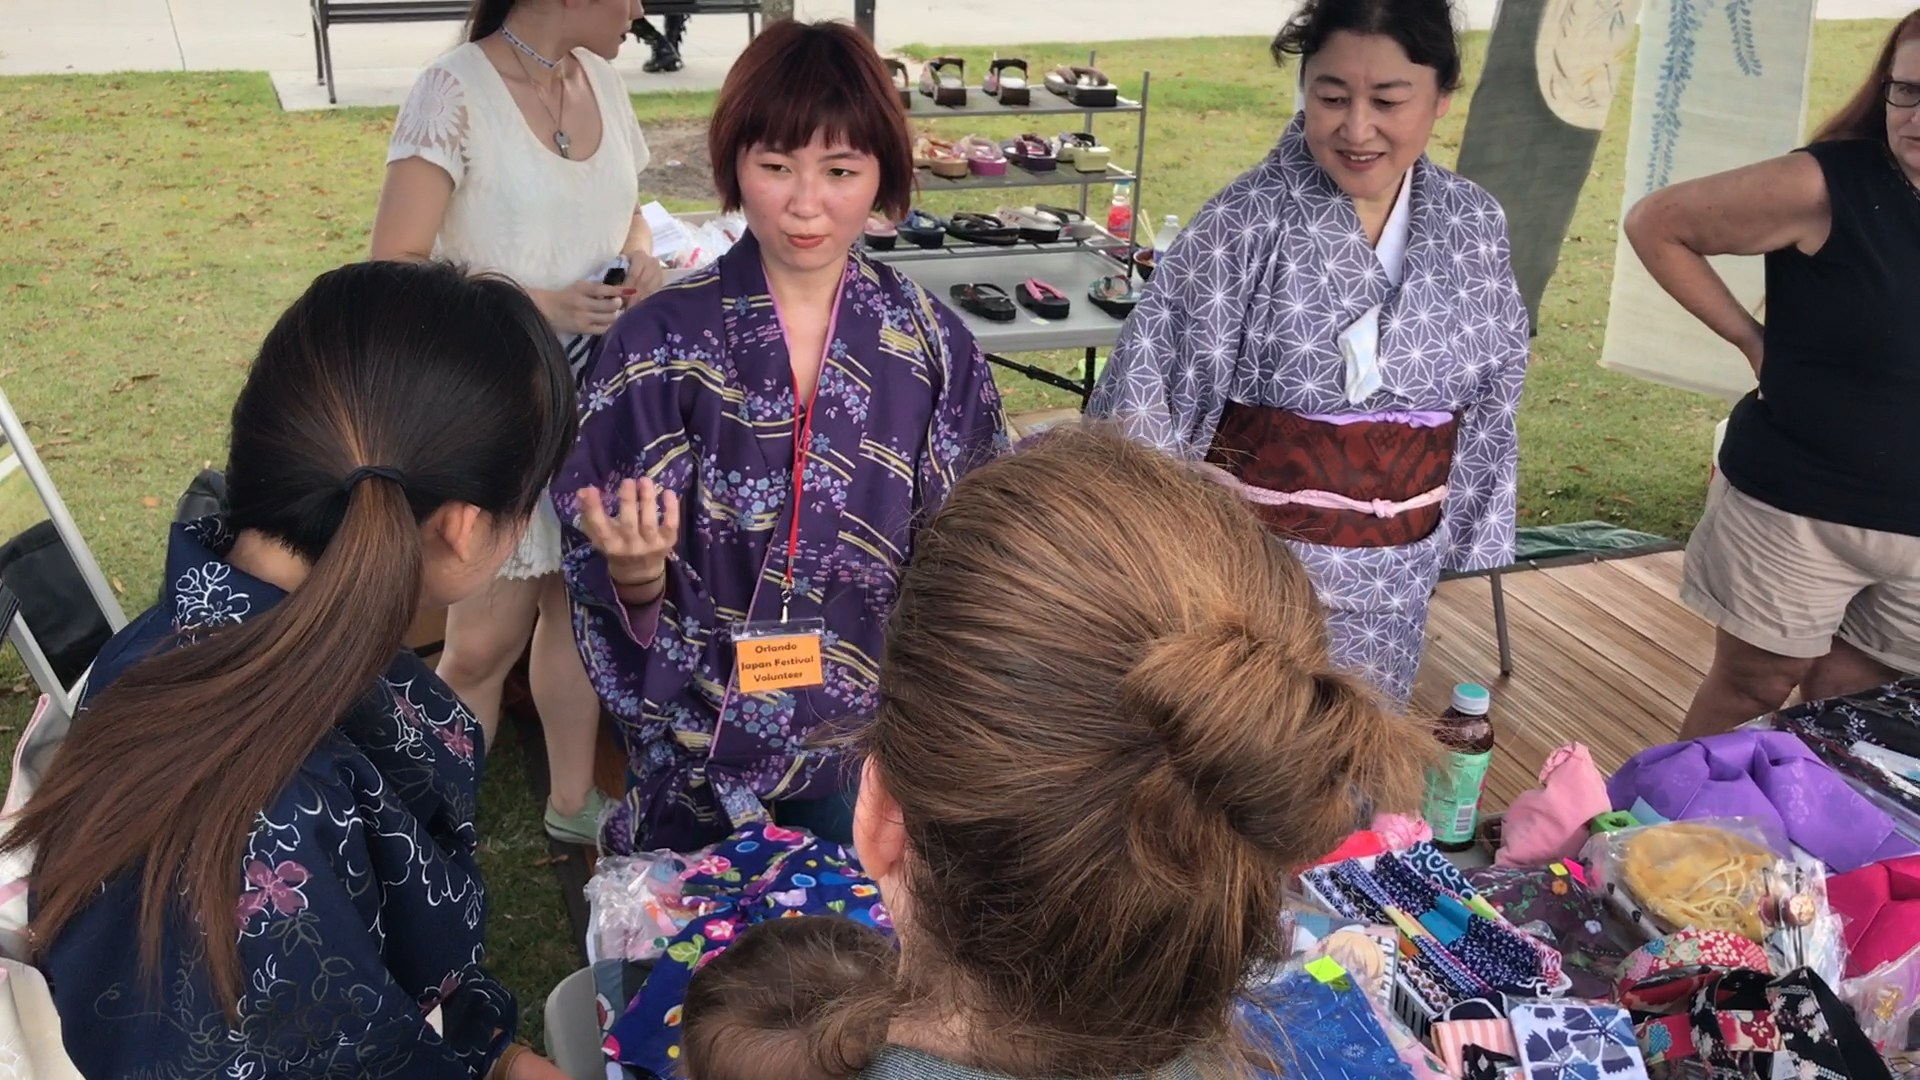 Yayoi Kimono and Accessories - JAO Orlando Japan Festival Review YouTube Video 2017 Lots of Fun Every Year